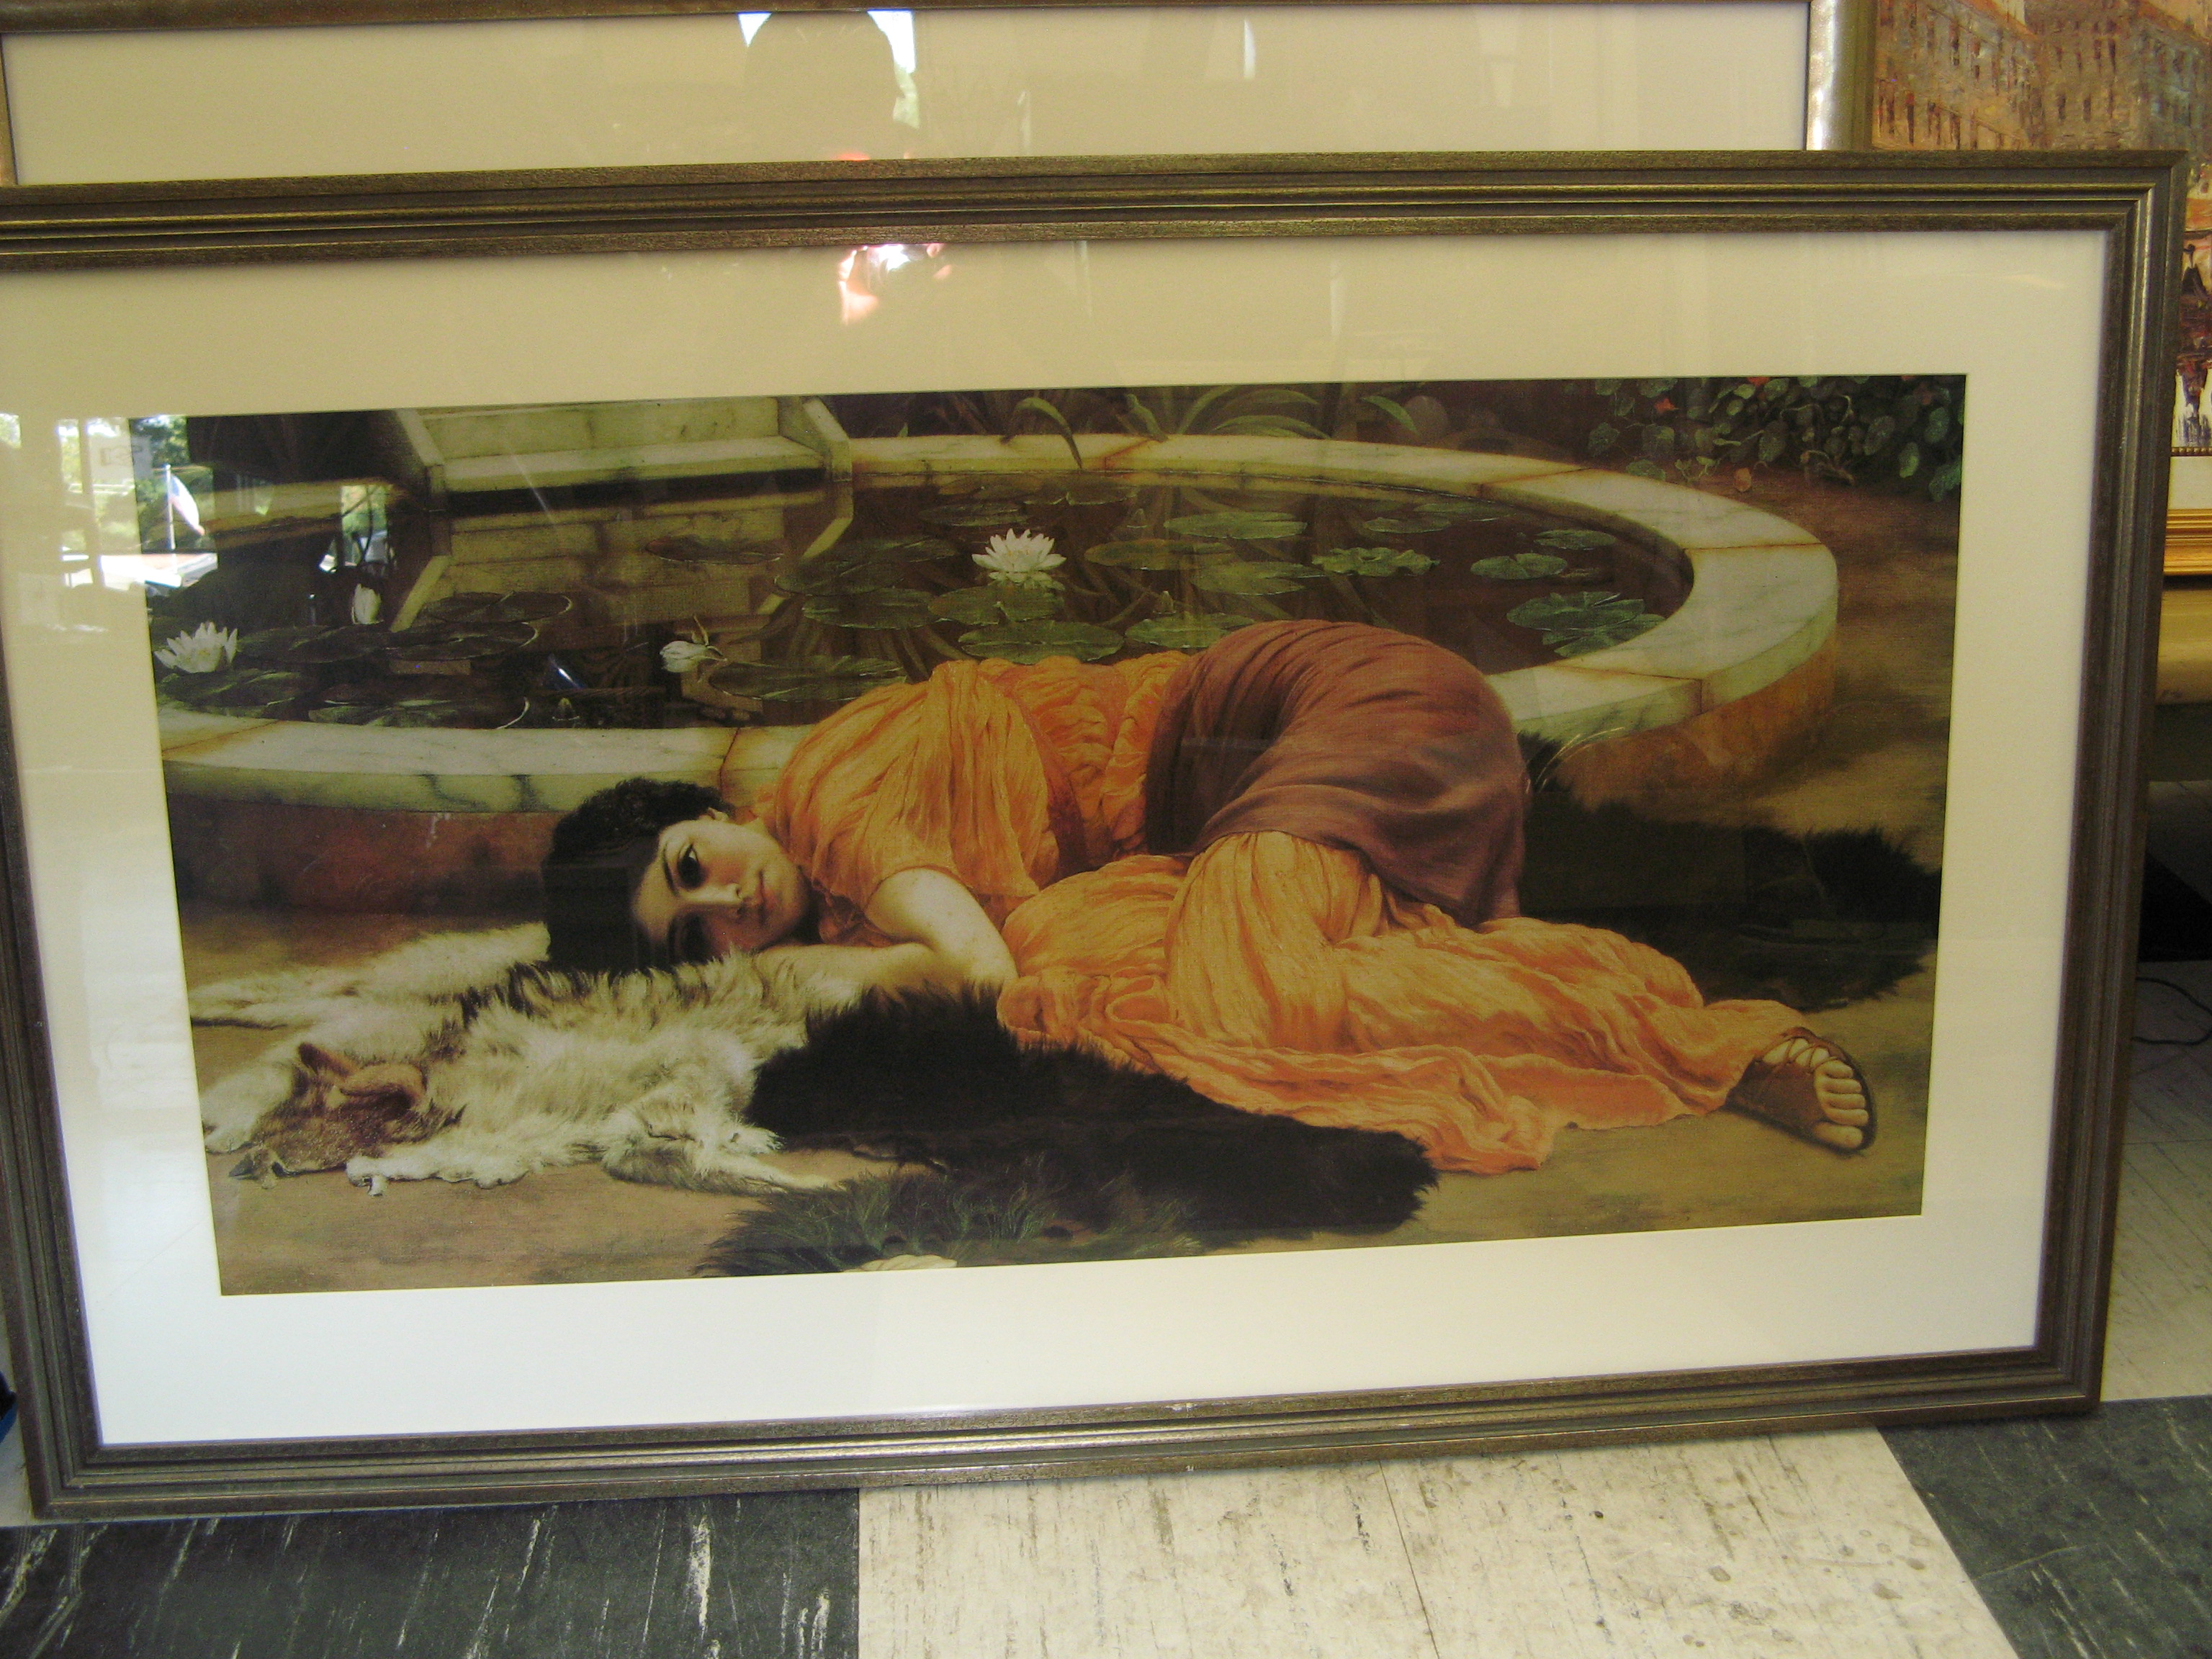 Print of Woman Lying at Rest on Furs, Framed